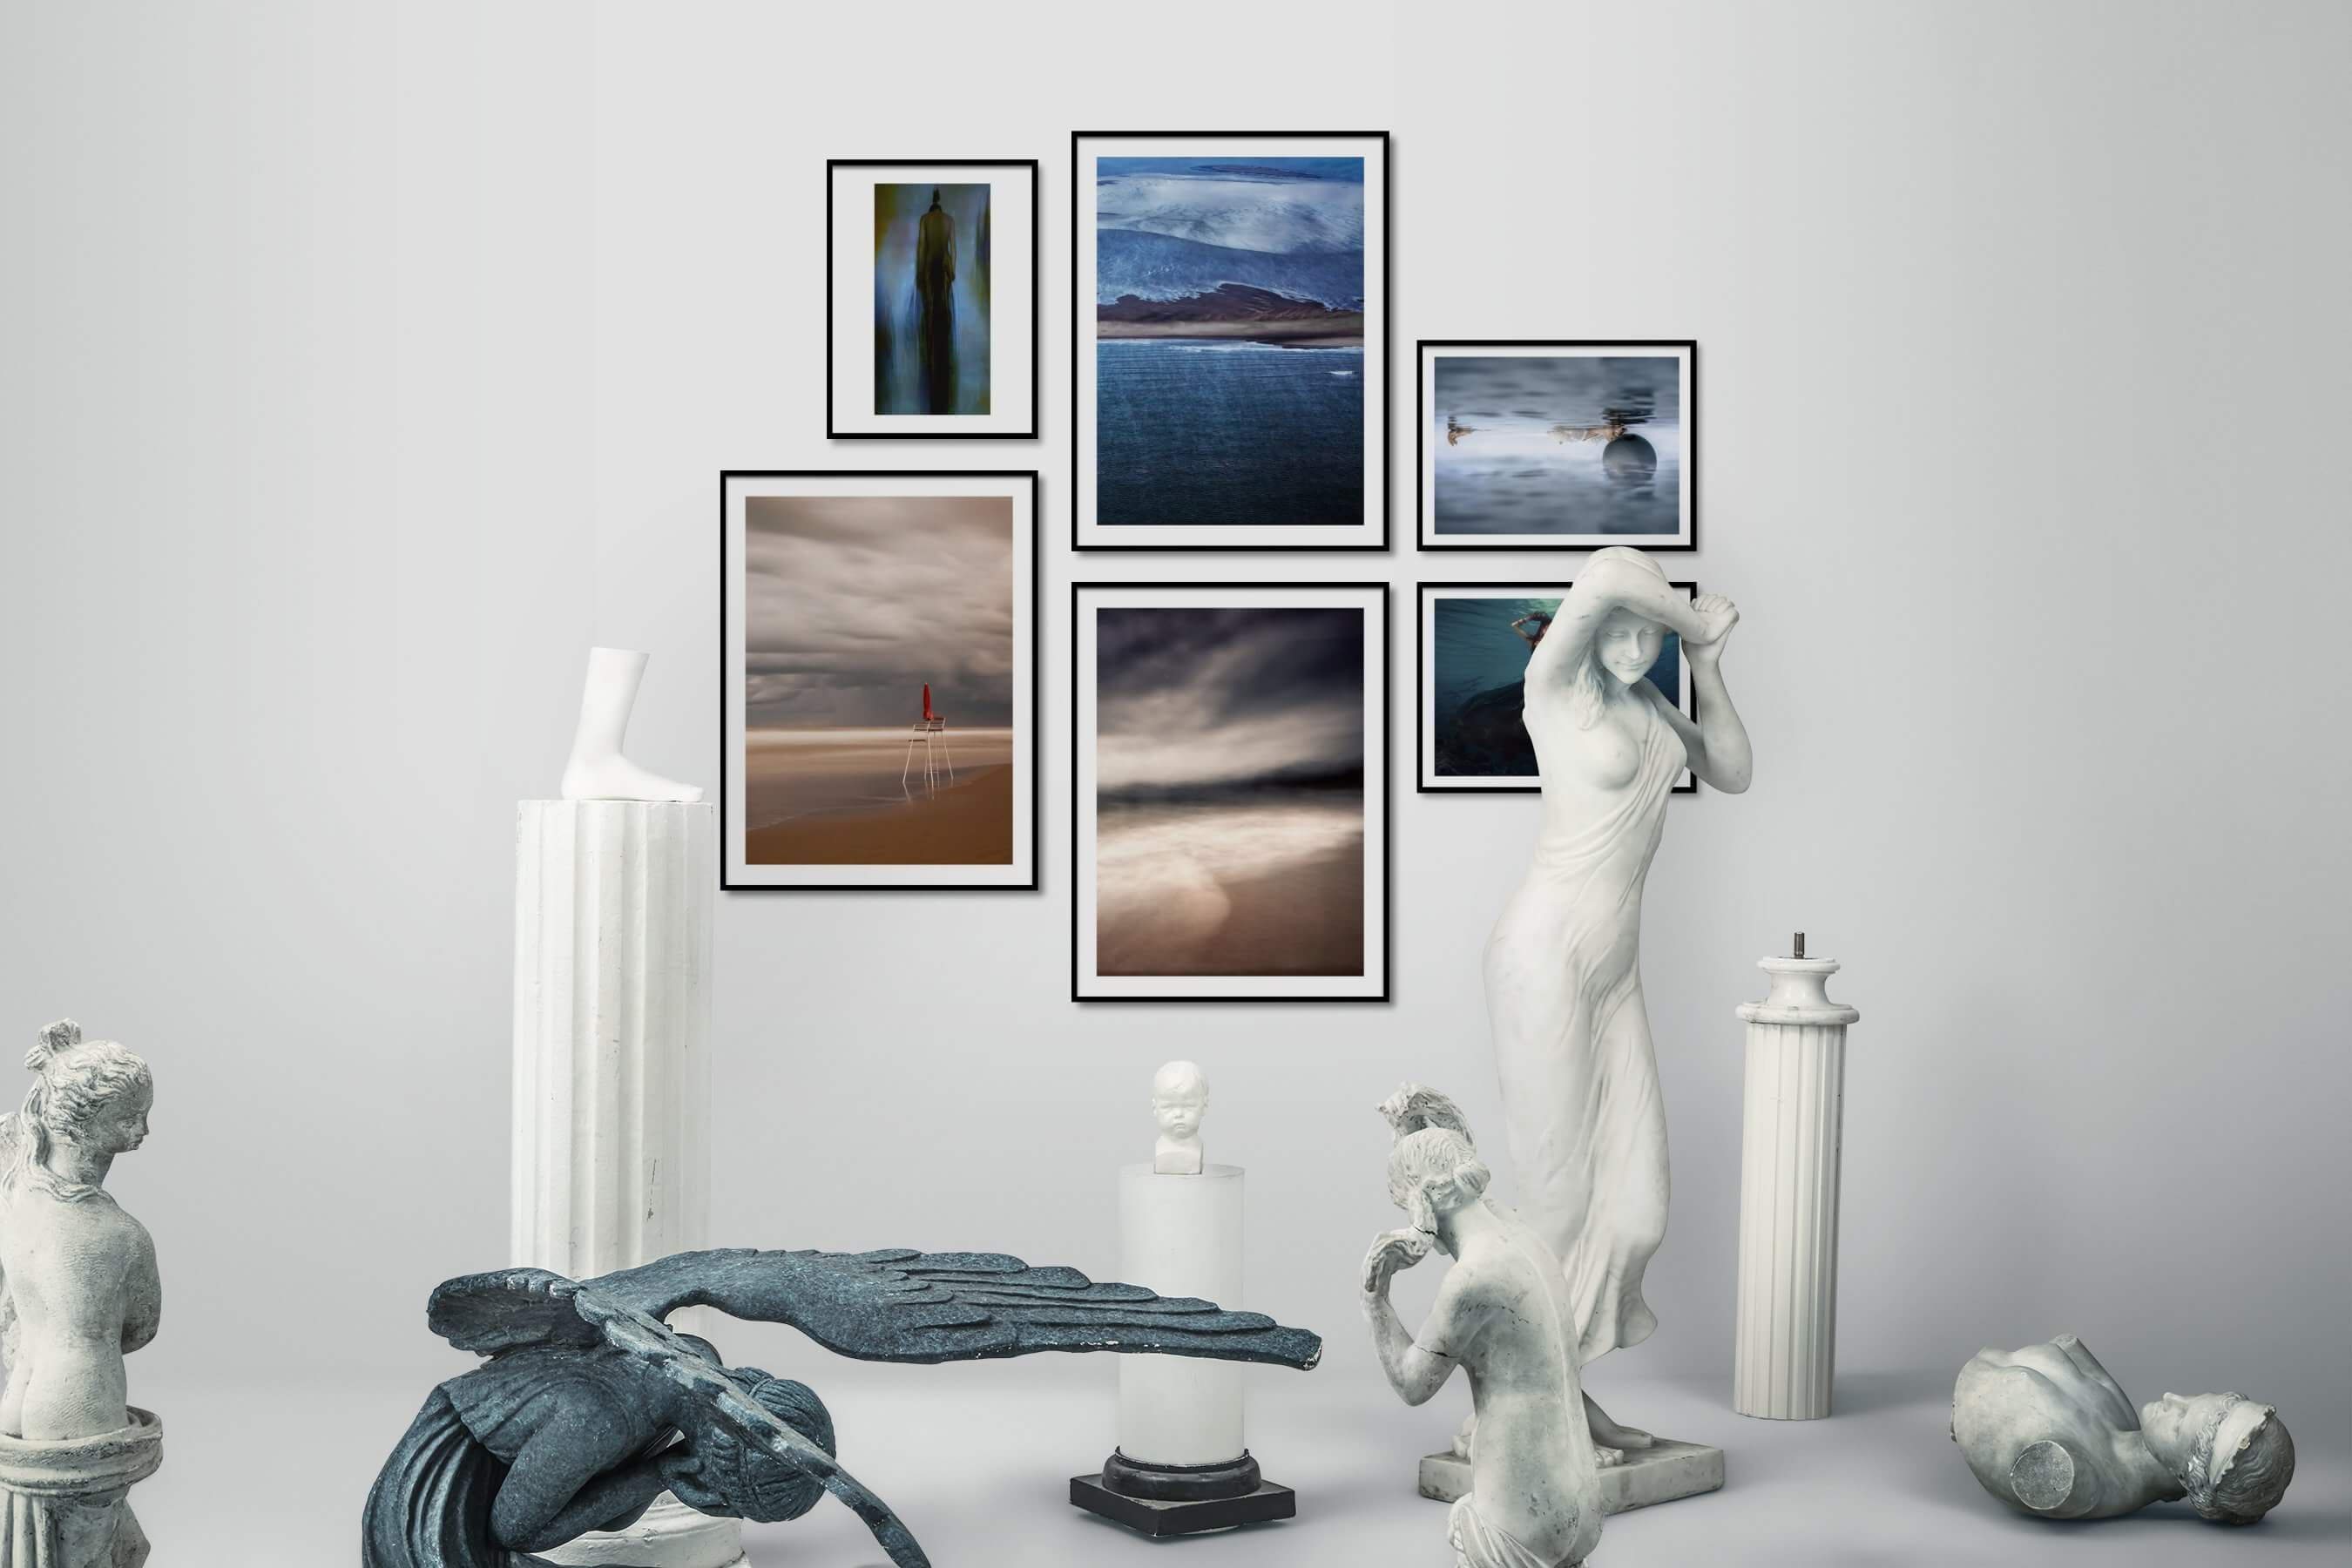 Gallery wall idea with six framed pictures arranged on a wall depicting Artsy, For the Moderate, Beach & Water, For the Minimalist, Mindfulness, and Fashion & Beauty